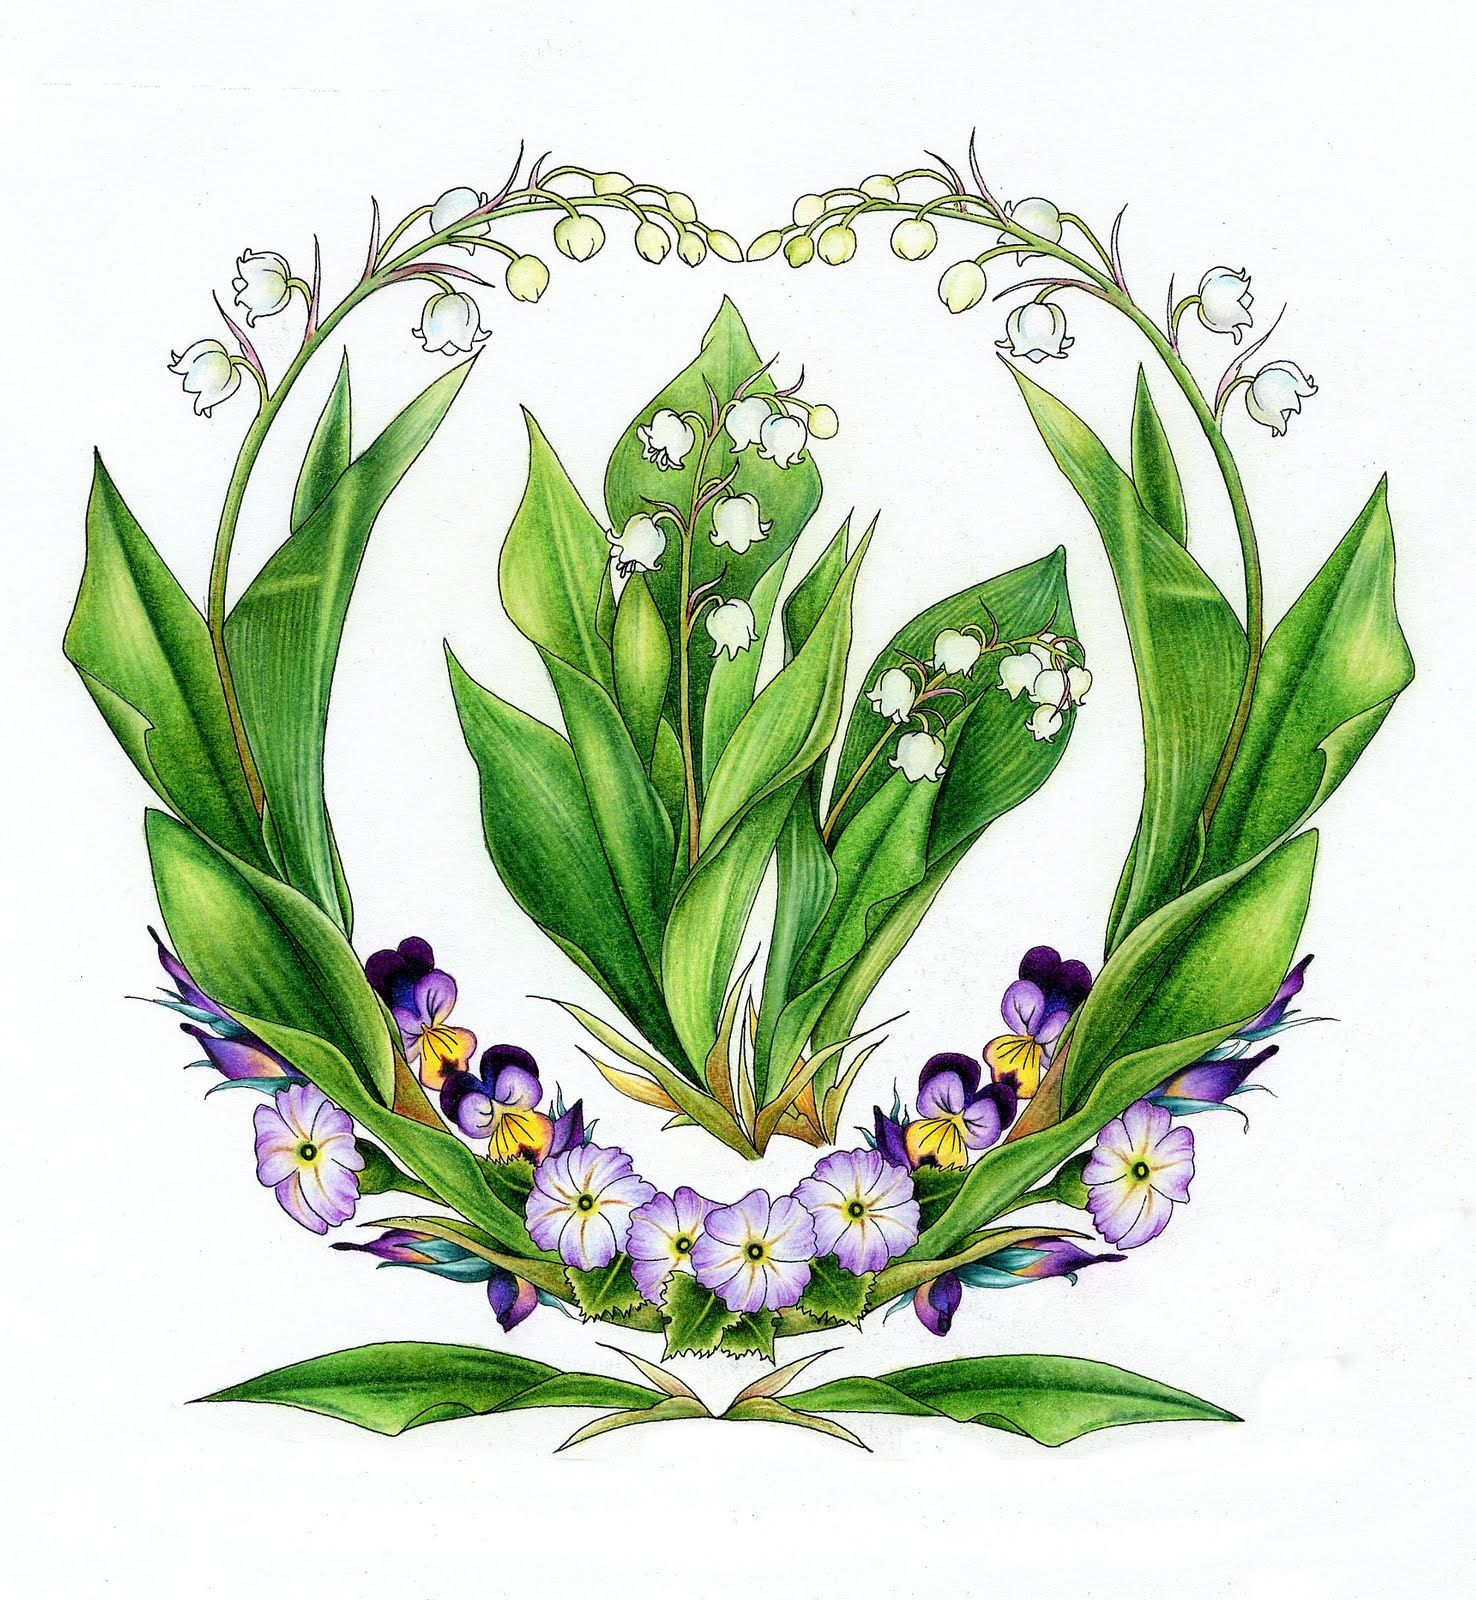 The french tradition of giving lily of the valley flowers muguet du the french tradition of giving lily of the valley flowers muguet du bois on may day is believed to have begun on may 1st 1561 when king charles ix of izmirmasajfo